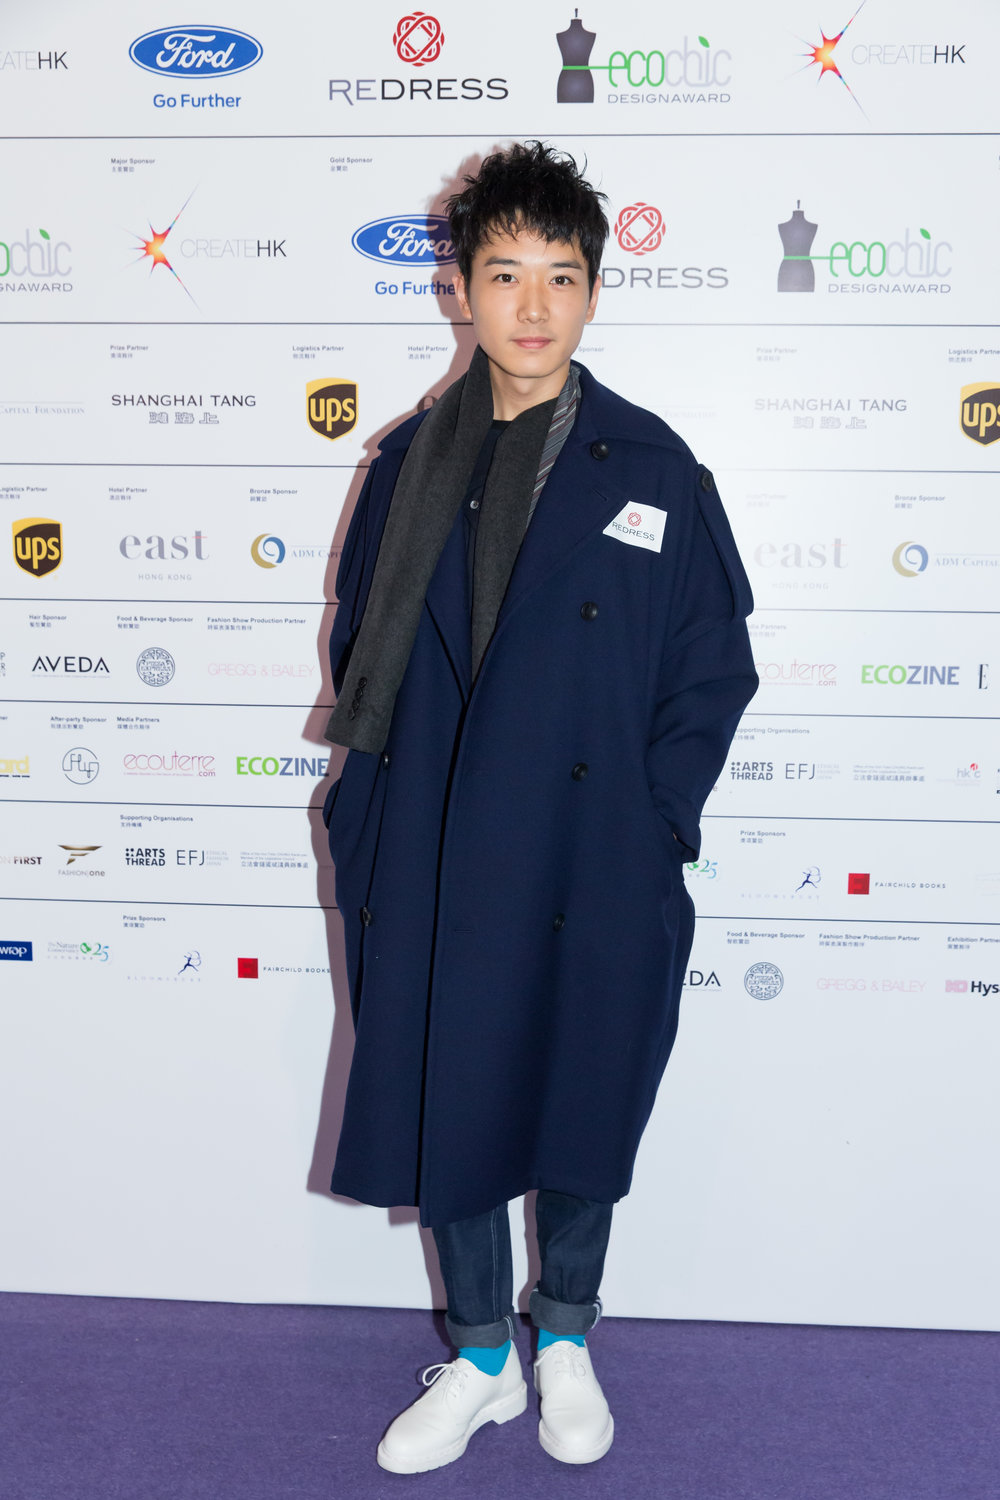 Hong Kong actor Babyjohn Choi attends Redress Design Award 2015/16 Grand Final Show